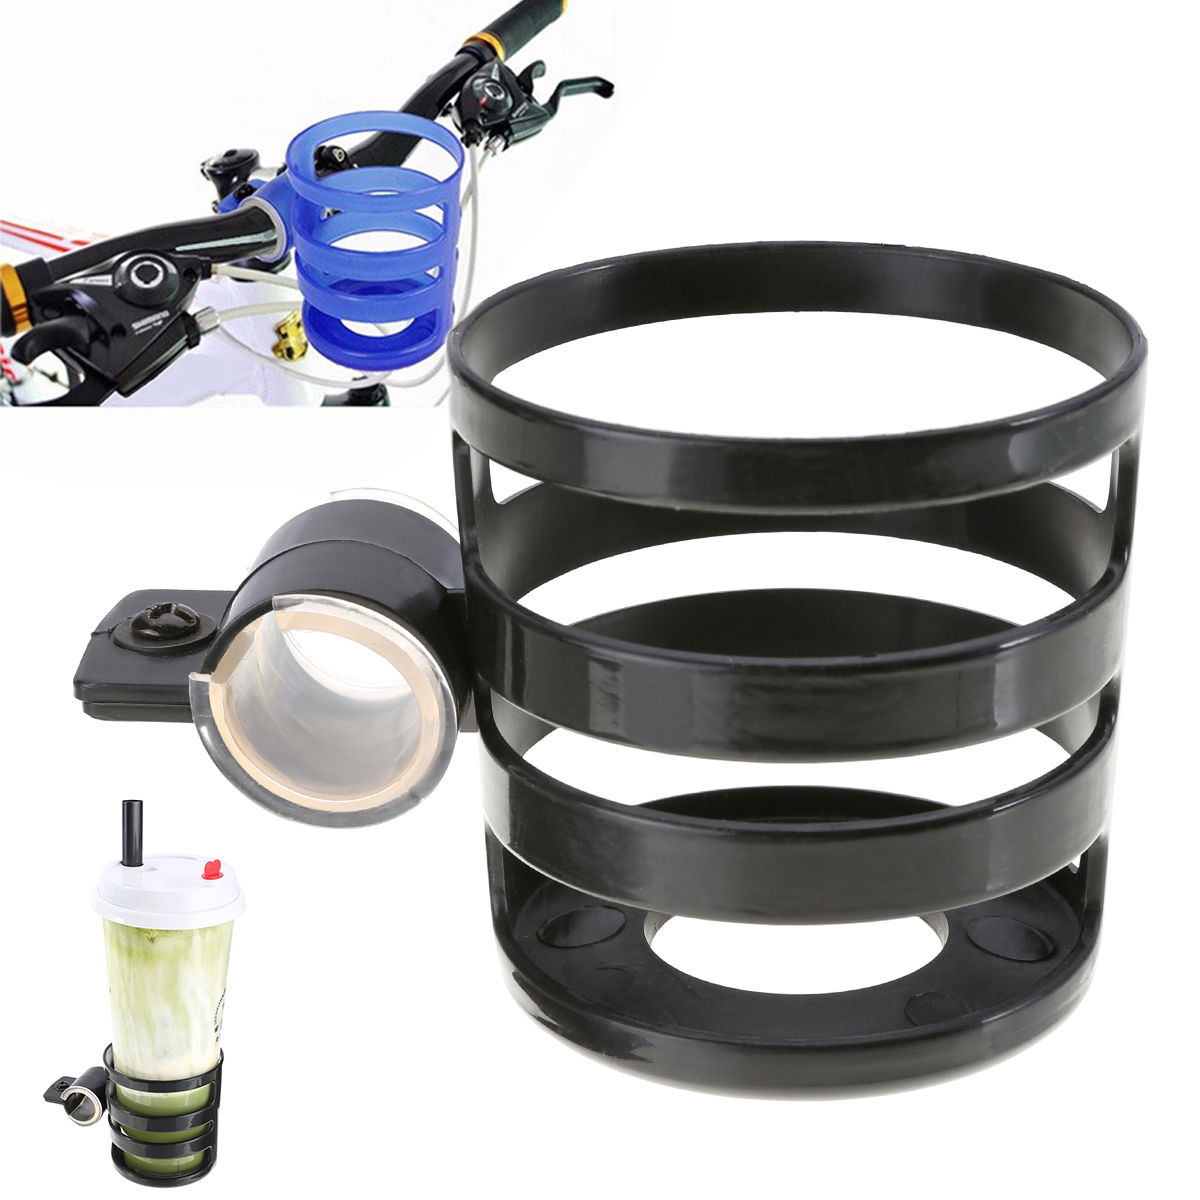 Bicycle Water Bottle Cup Holder - Black